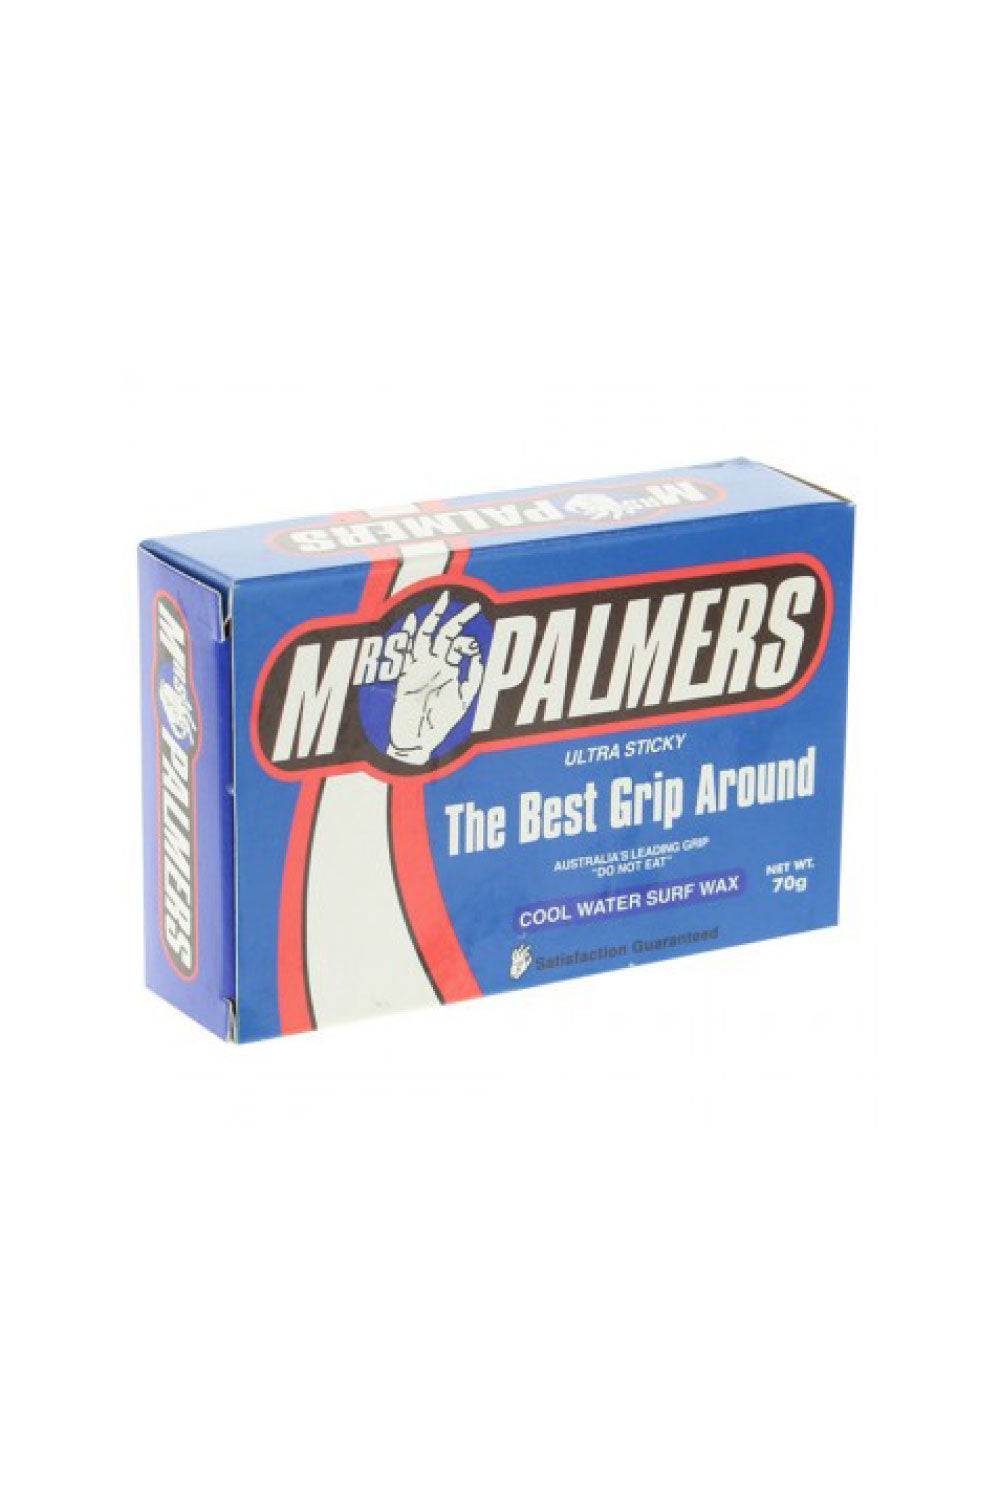 Cool Water Mrs Palmers Wax | Buy Surfing Wax Online Australia